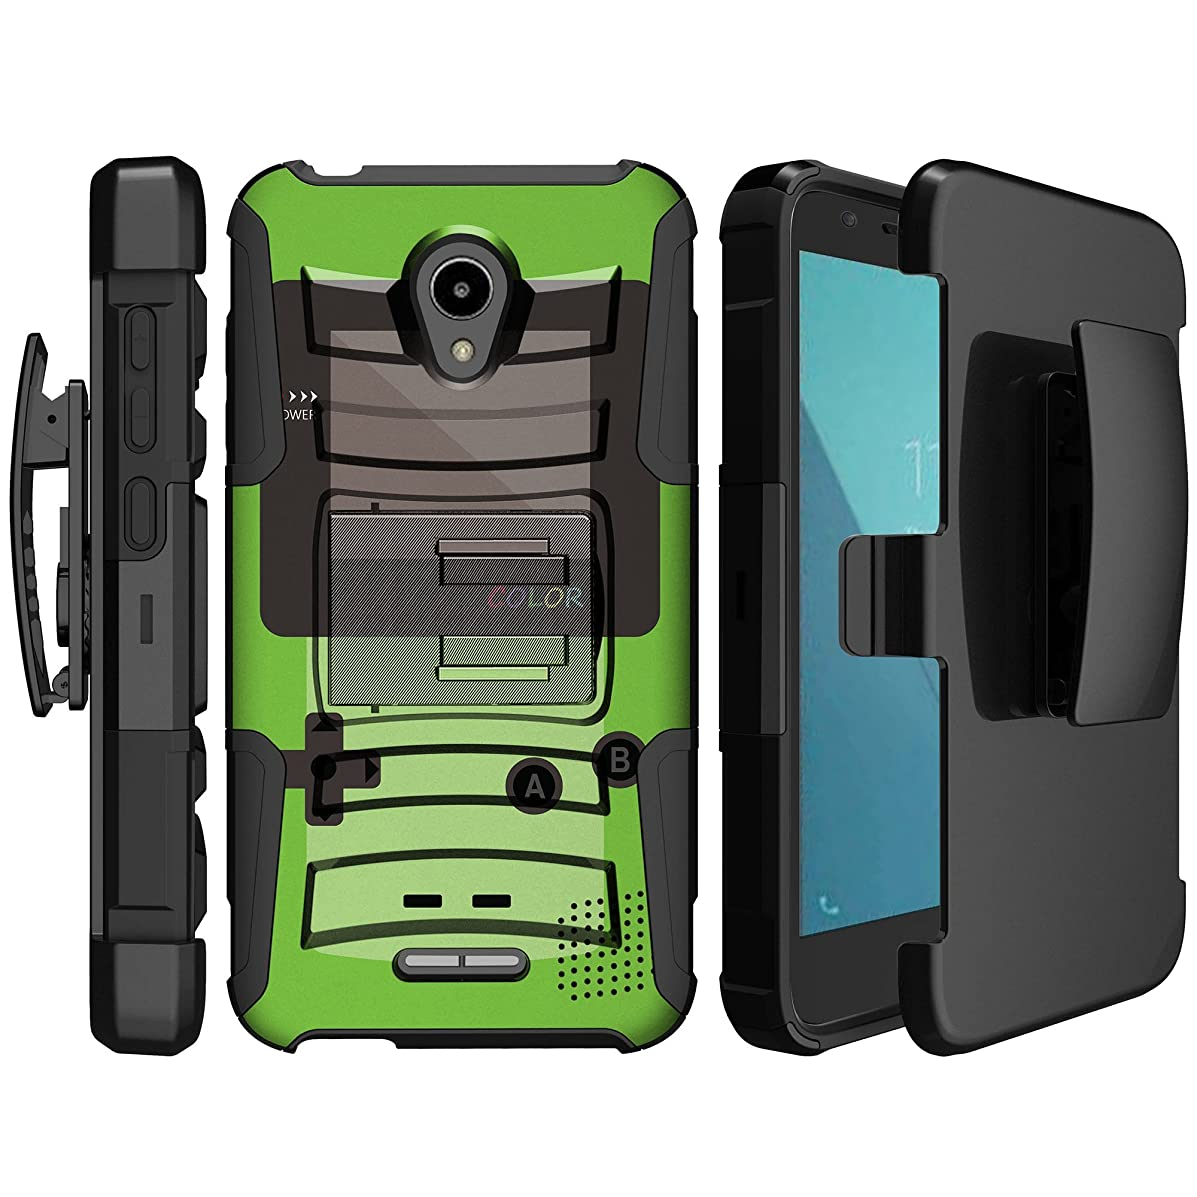 MINITURTLE Compatible with Alcatel Verso, Ideal Xcite, Raven A574BL, Fiji [MINITURTLE Kickstand Belt Clip Case] Ultimate Rugged Hoslter Hybrid Cover - Green Game Color